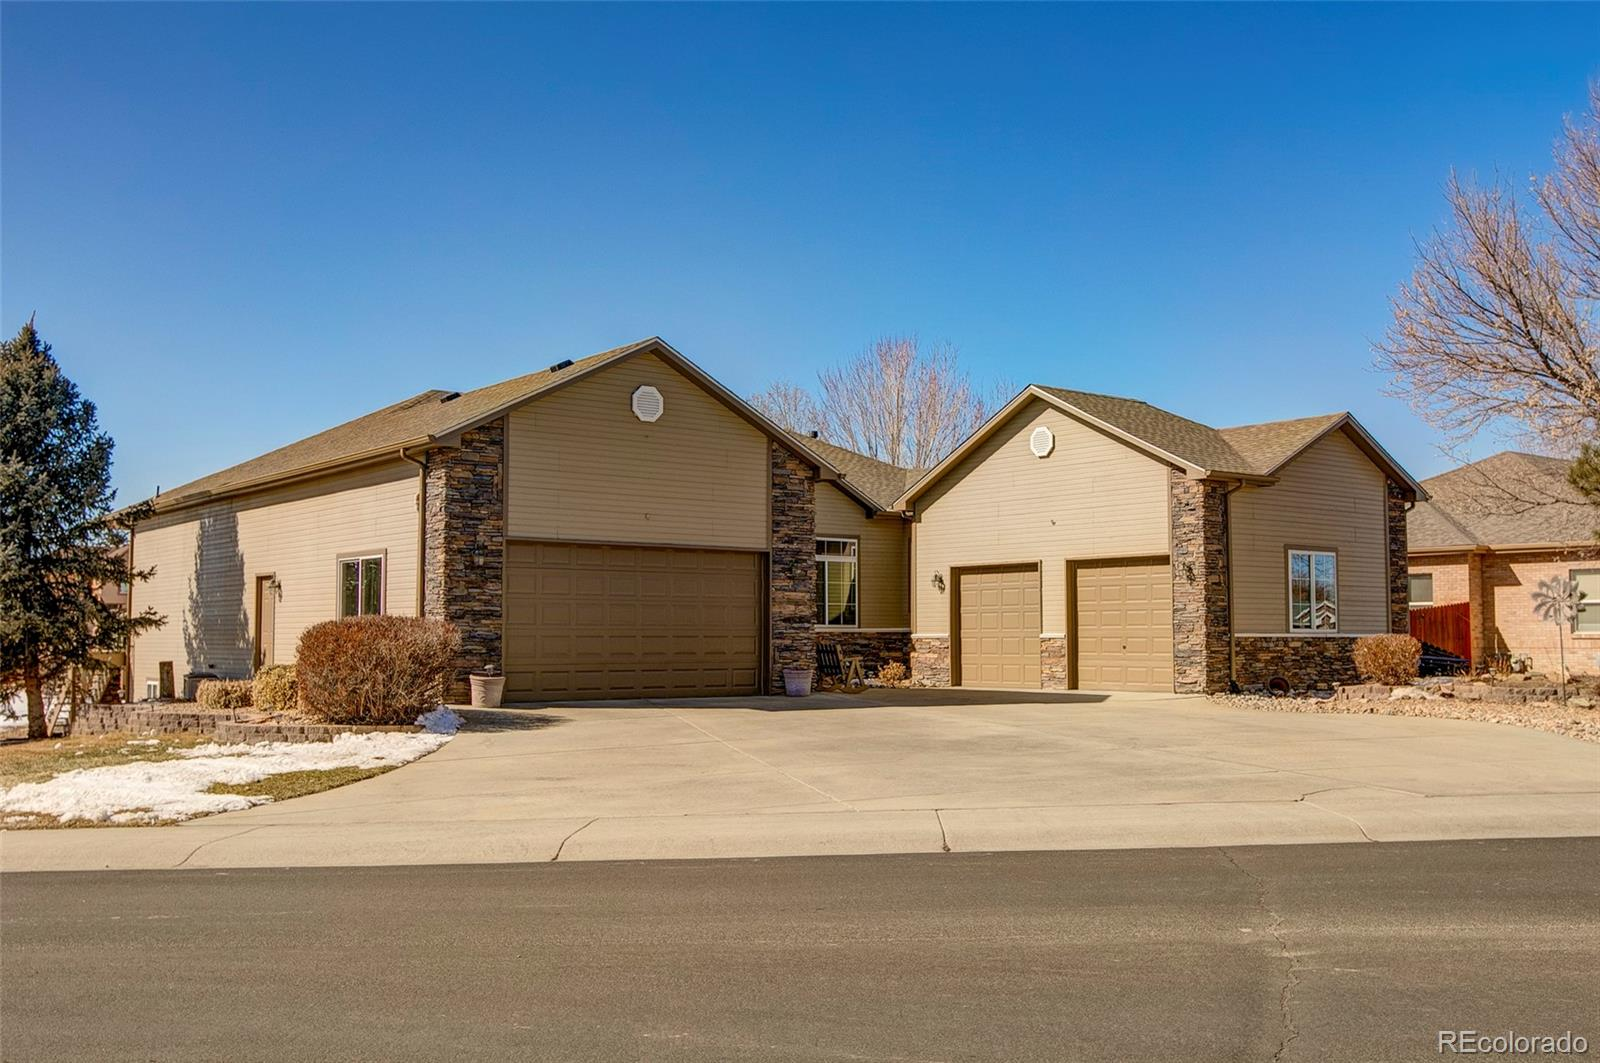 MLS# 7126152 - 1 - 5816 W Conservation Drive, Frederick, CO 80504